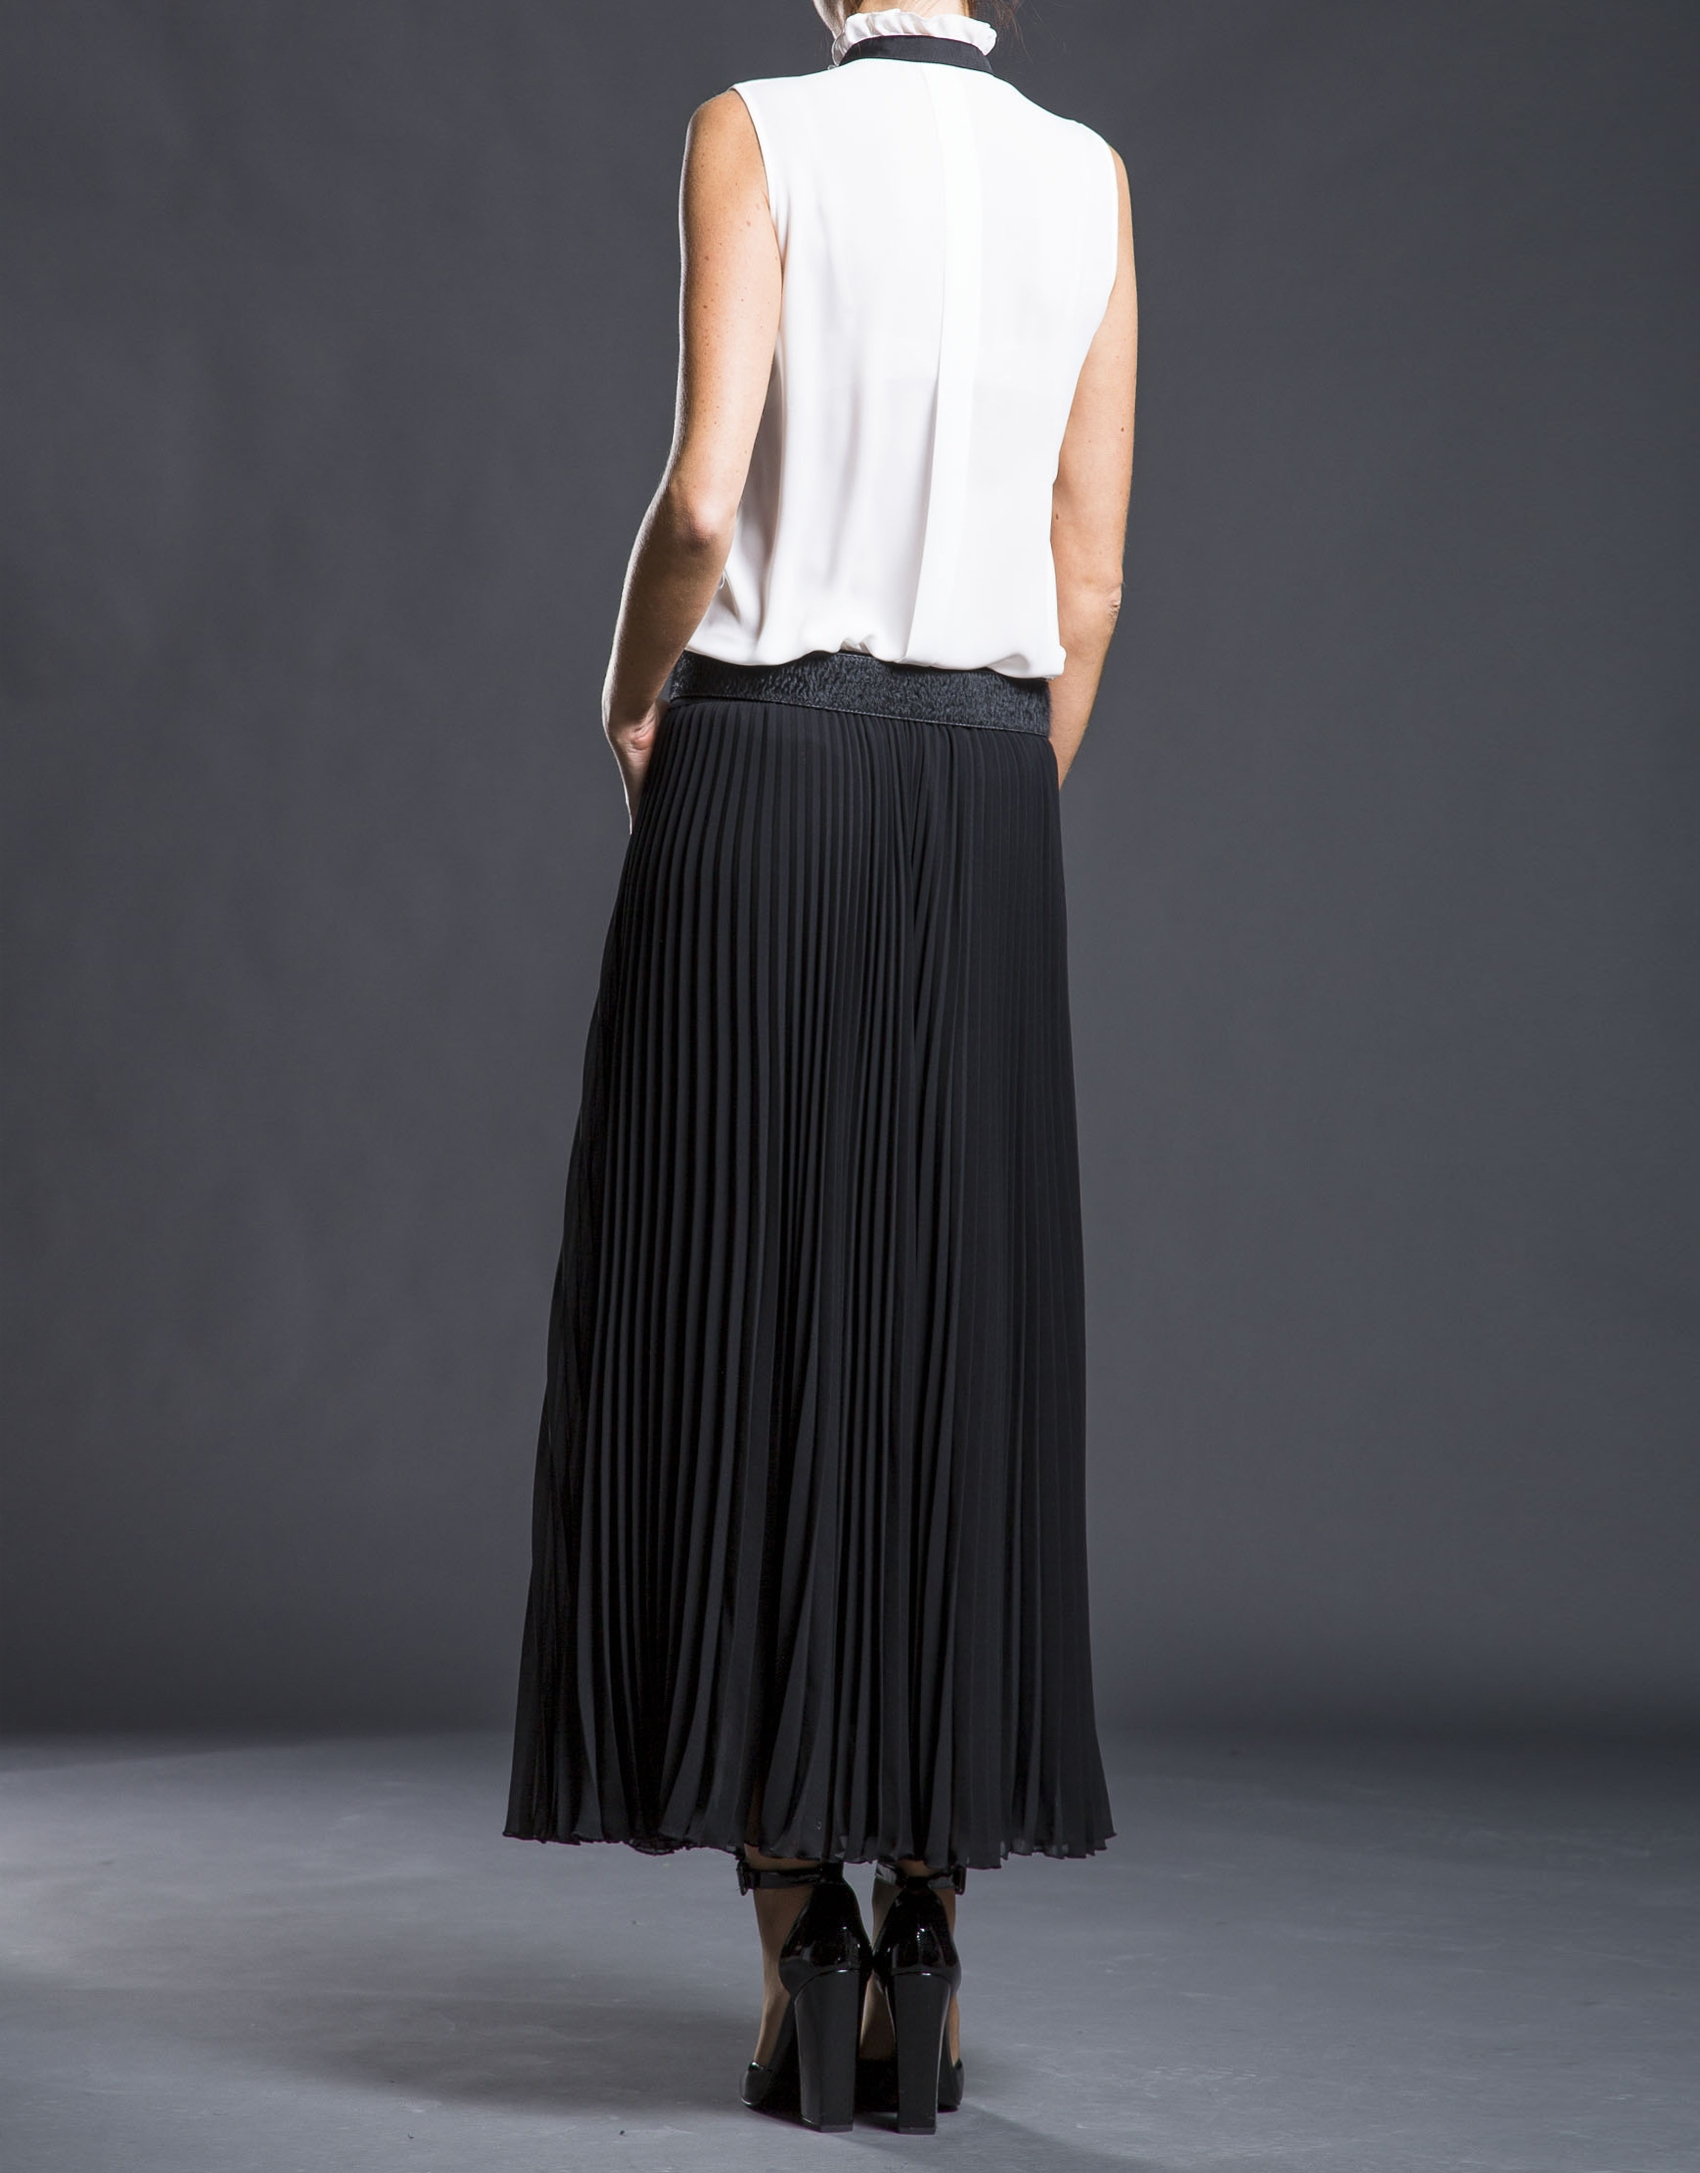 Long Skirts: Free Shipping on orders over $45 at eskortlarankara.ga - Your Online Skirts Store! Get 5% in rewards with Club O!